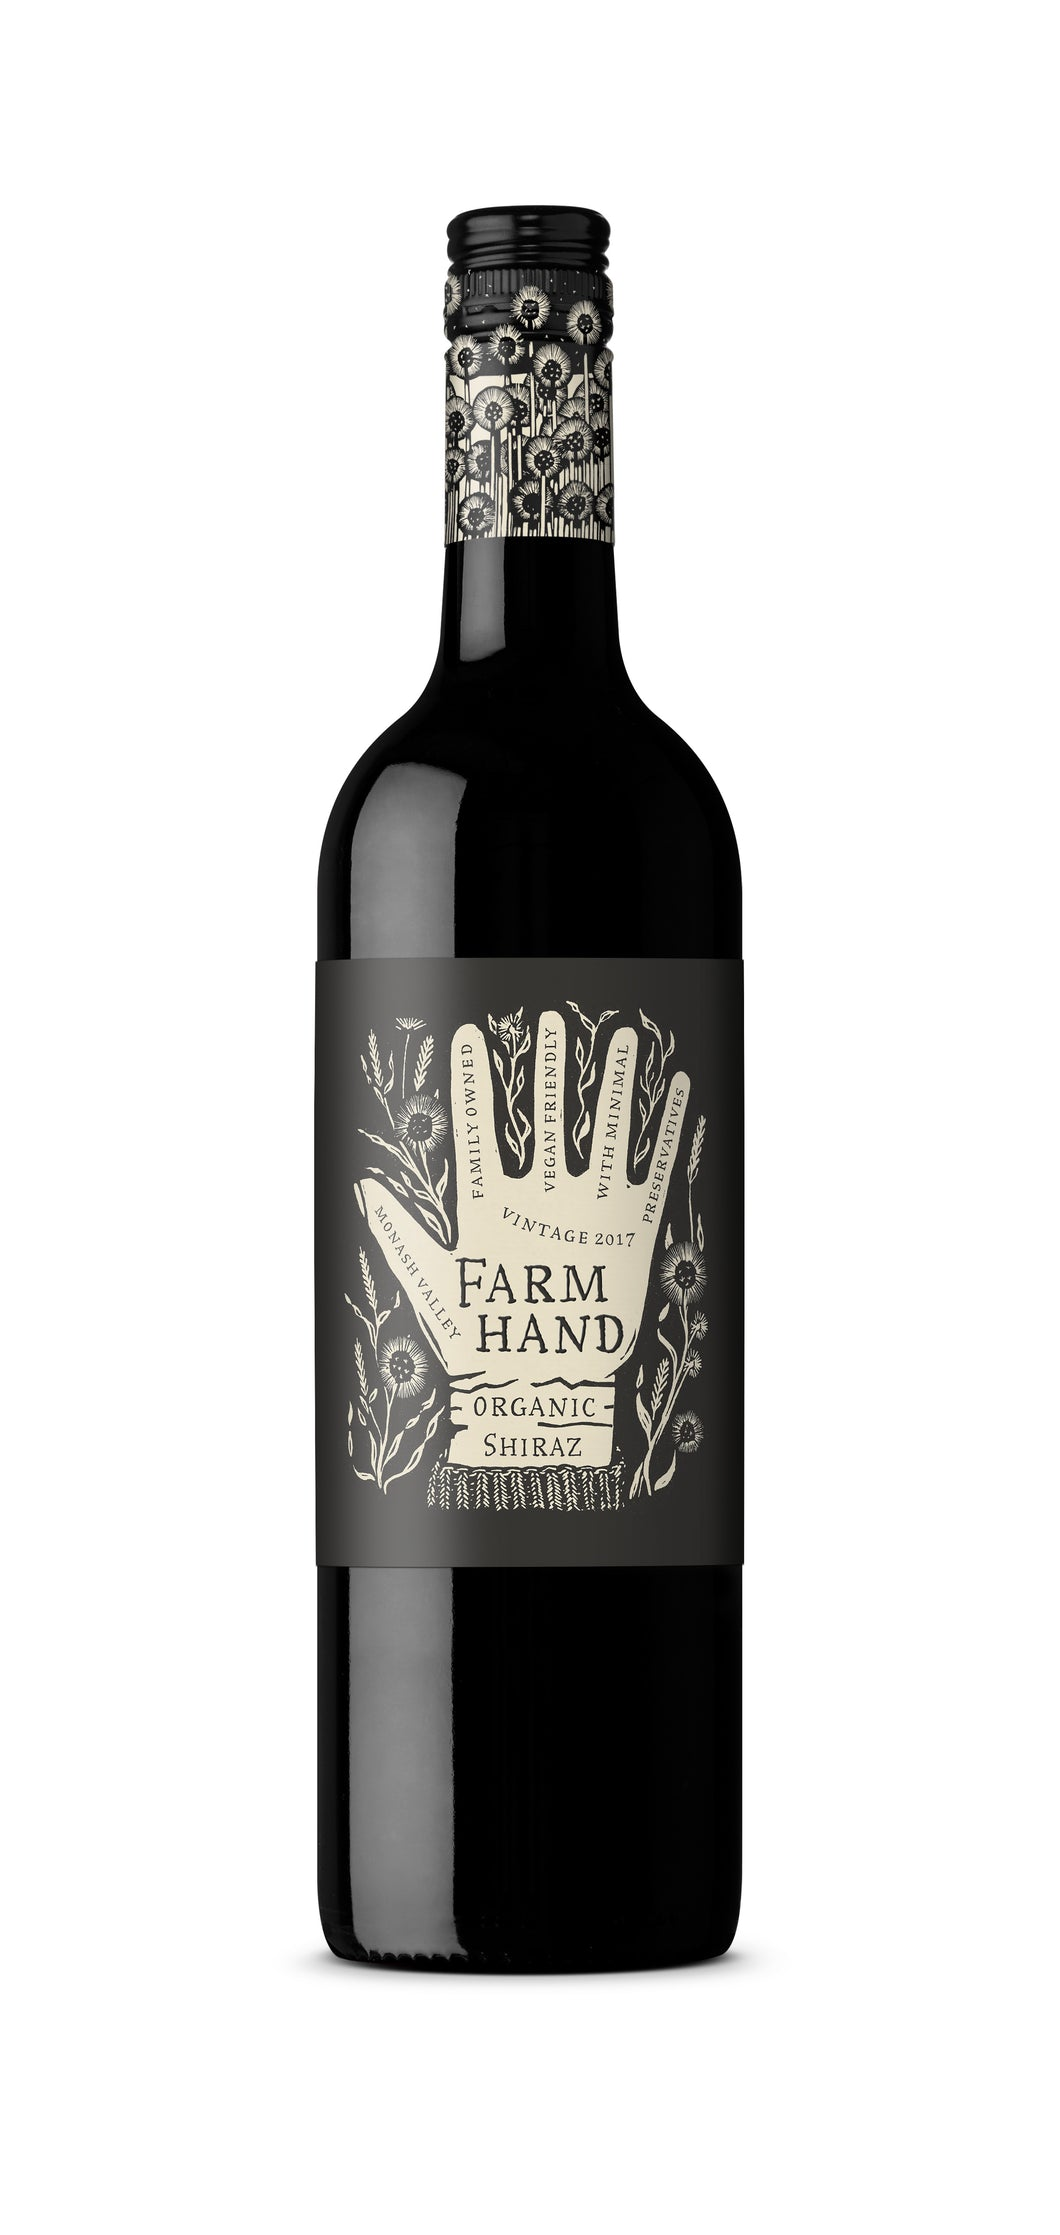 Farm Hand Organic Shiraz 2017 - Network Wines